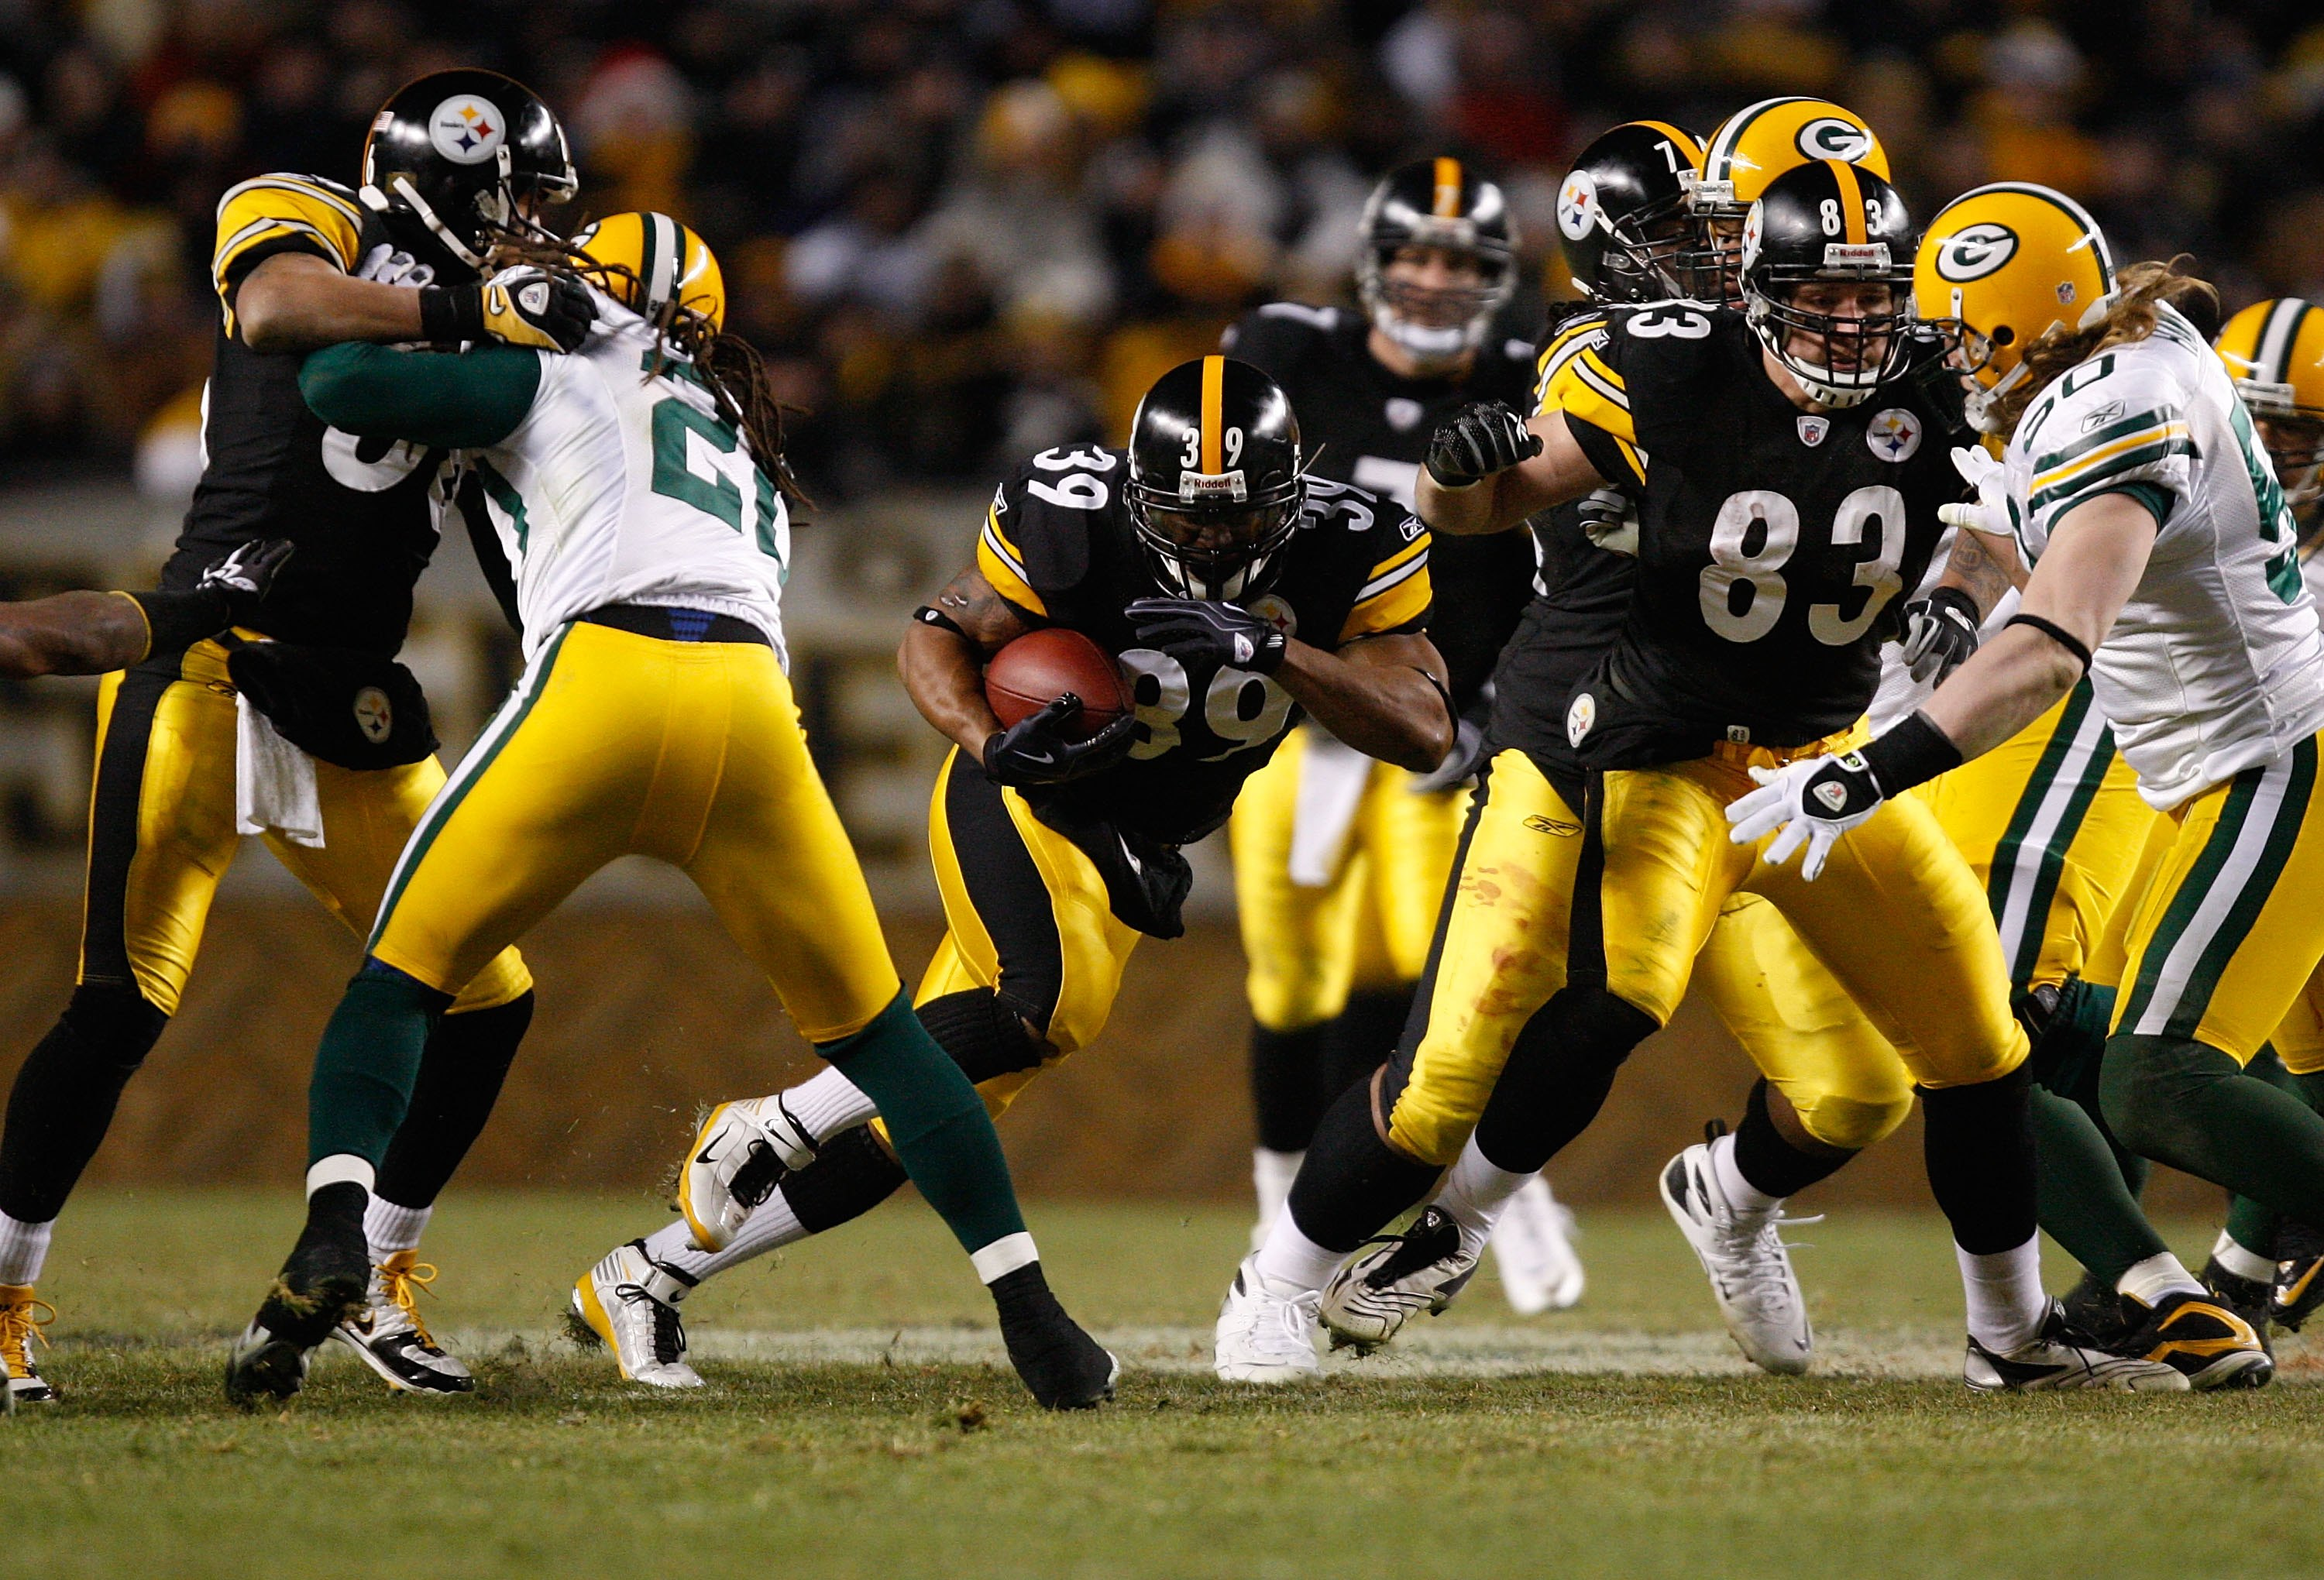 PITTSBURGH - DECEMBER 20: Willie Parker #39 of the Pittsburgh Steelers runs with the ball past Charles Woodson #21 and AJ Hawk #50 of the Green Bay Packers during the game on December 20, 2009 at Heinz Field in Pittsburgh, Pennsylvania. (Photo by Jared Wi